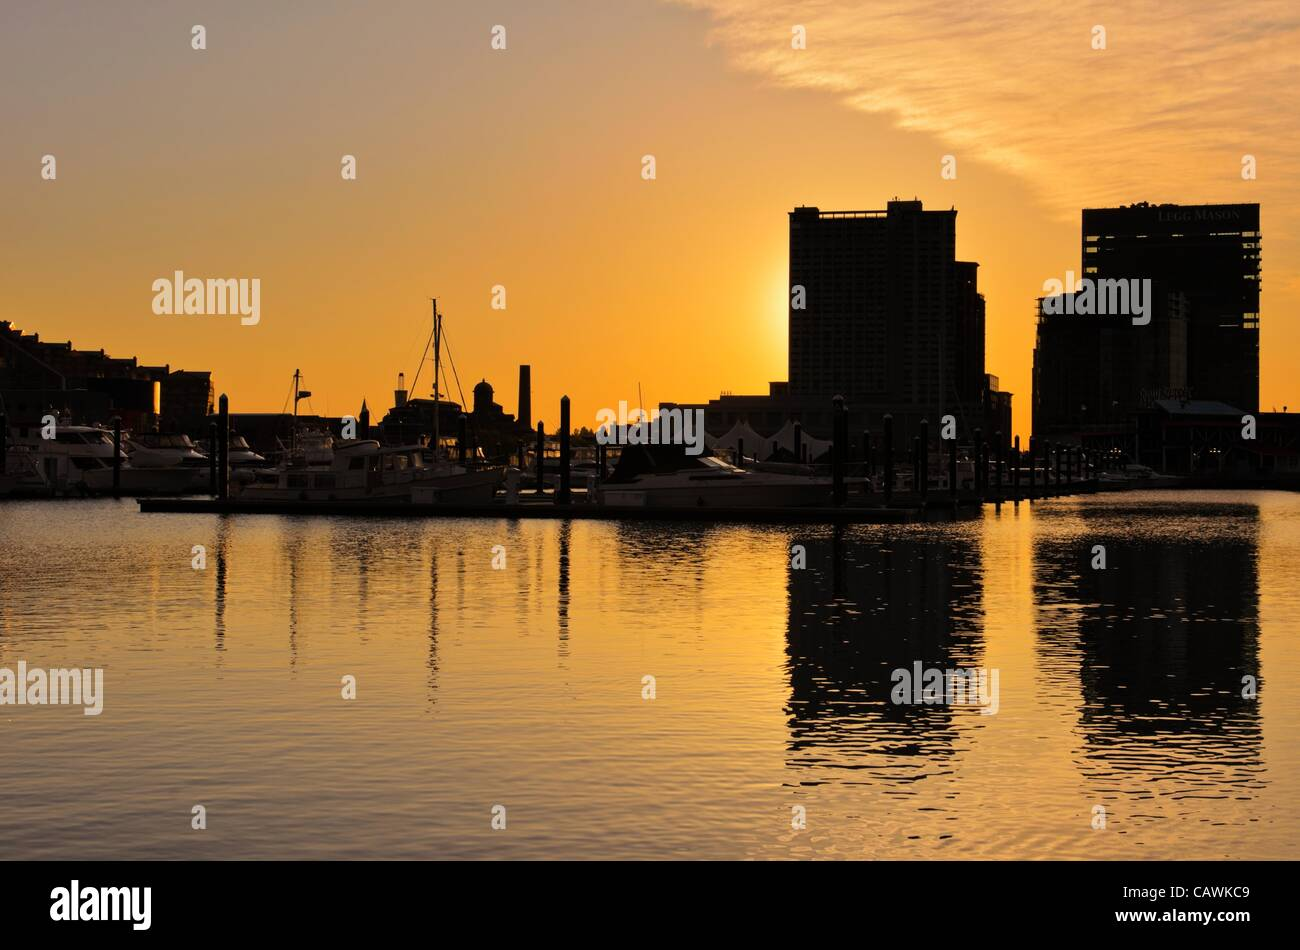 a-dramatic-and-beautiful-sunrise-with-buildings-and-boats-in-silhouette-CAWKC9.jpg